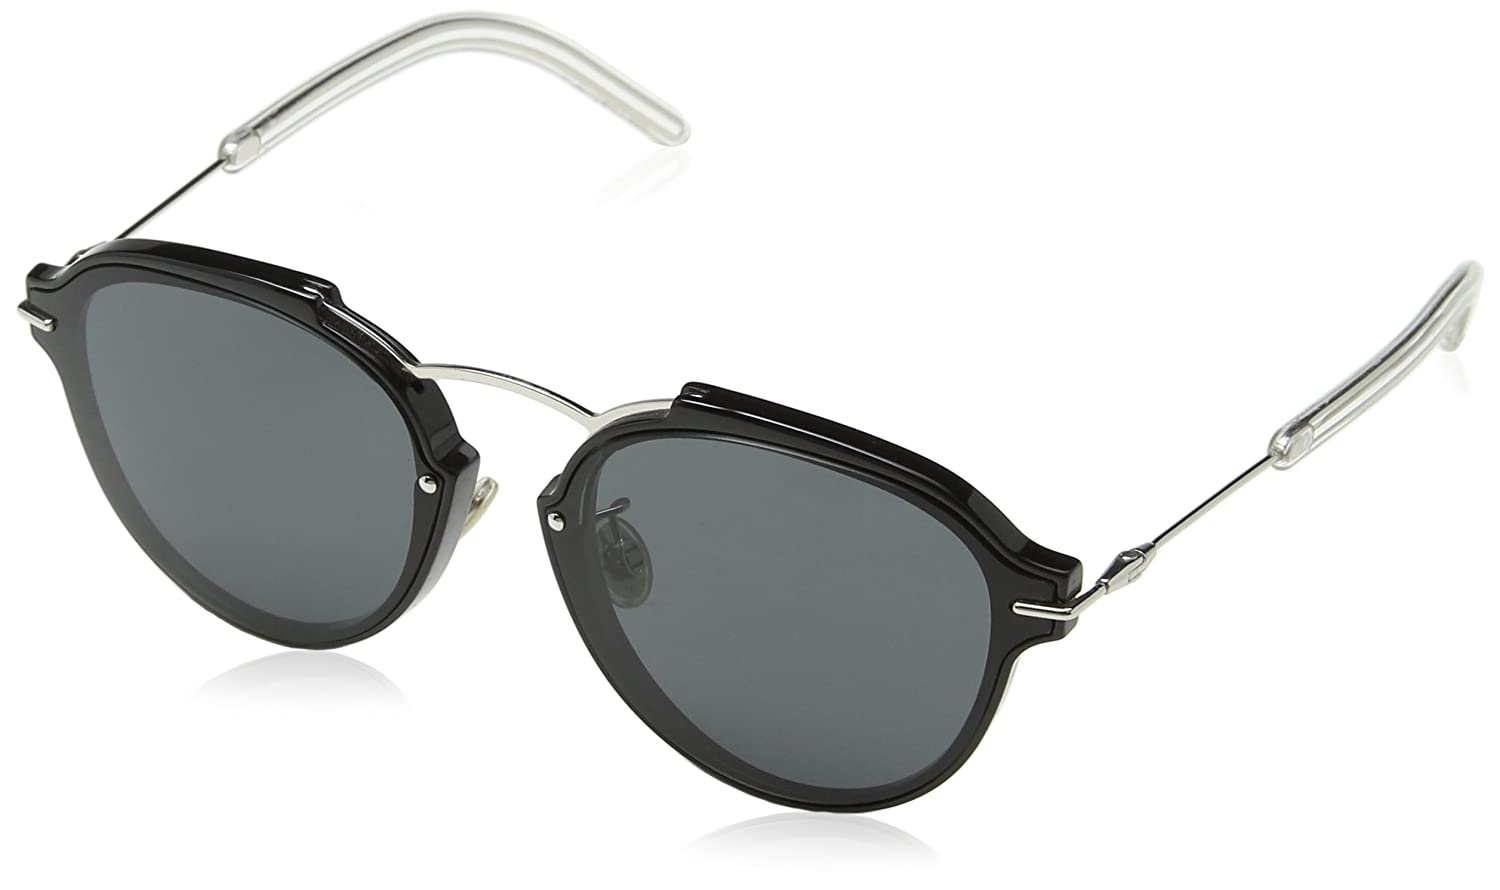 CHRISTIAN DIOR Women's DIORECLAT P9 RMG Sunglasses, Black Pallad/Grey, 60